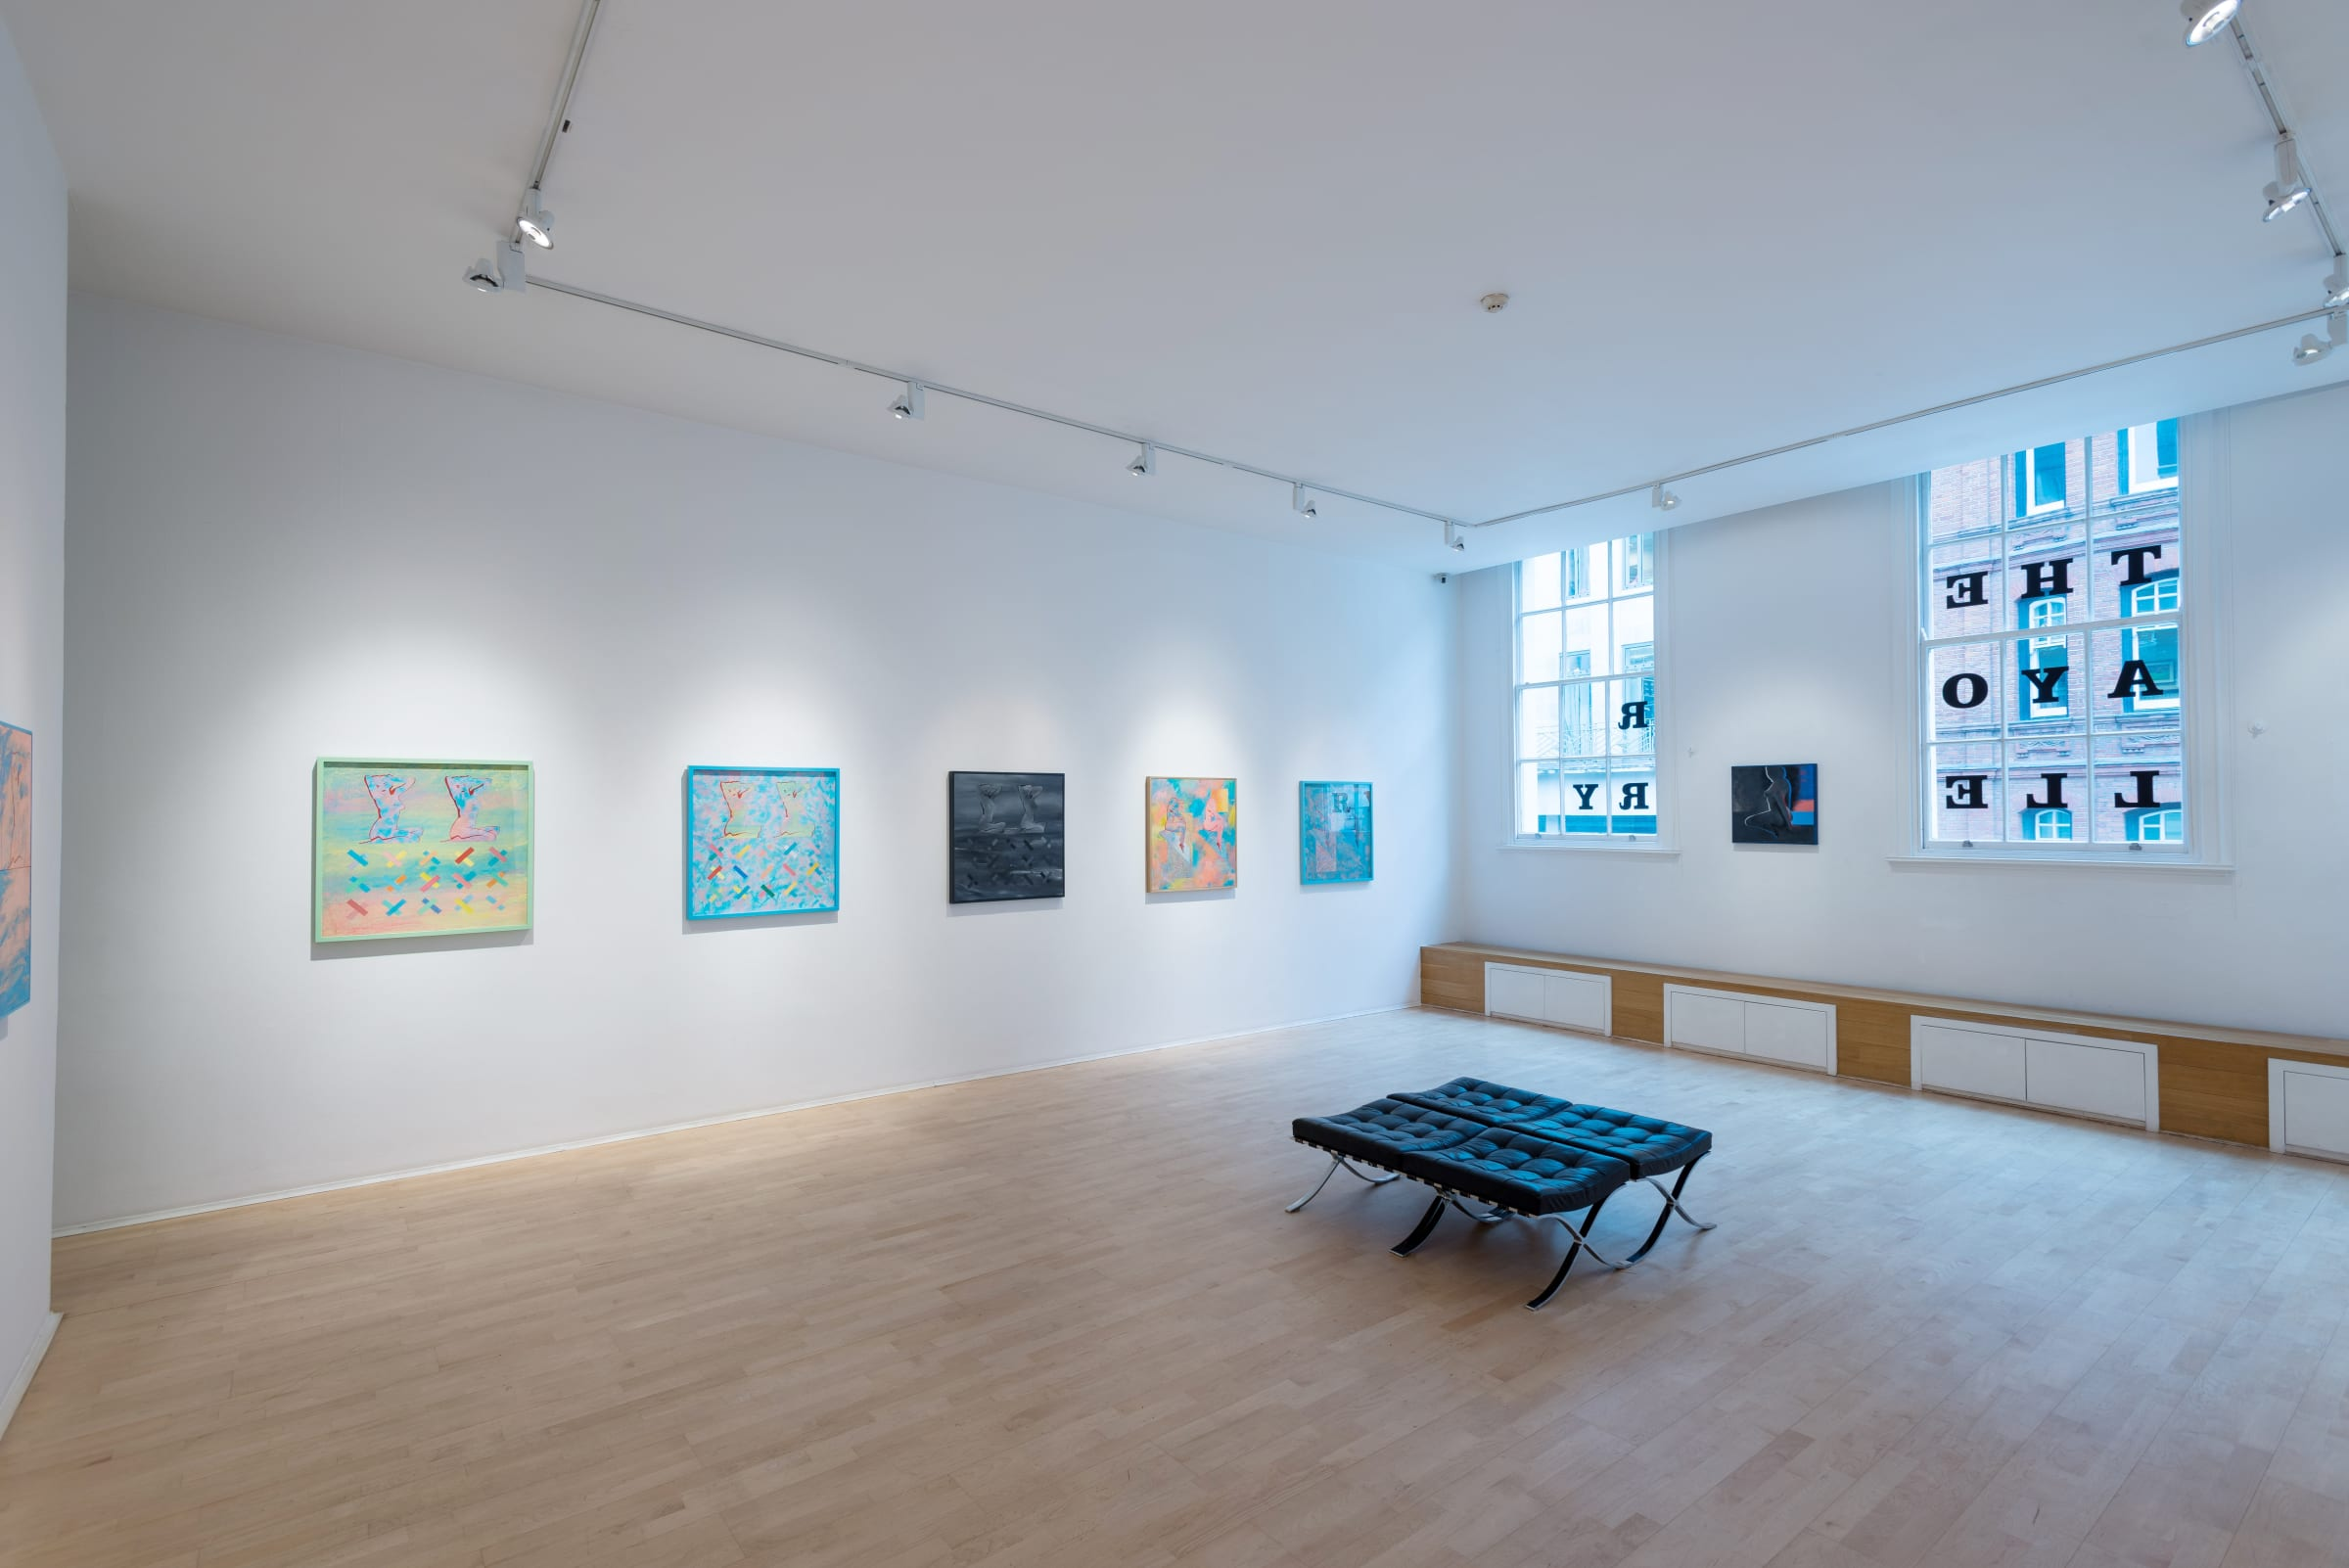 """<span class=""""link fancybox-details-link""""><a href=""""/exhibitions/318/works/image_standalone1625/"""">View Detail Page</a></span><p><strong>ANTONY DONALDSON</strong>   OF MEMORY OF OBLIVION   09 SEP - 09 OCT 2015   Installation view</p>"""